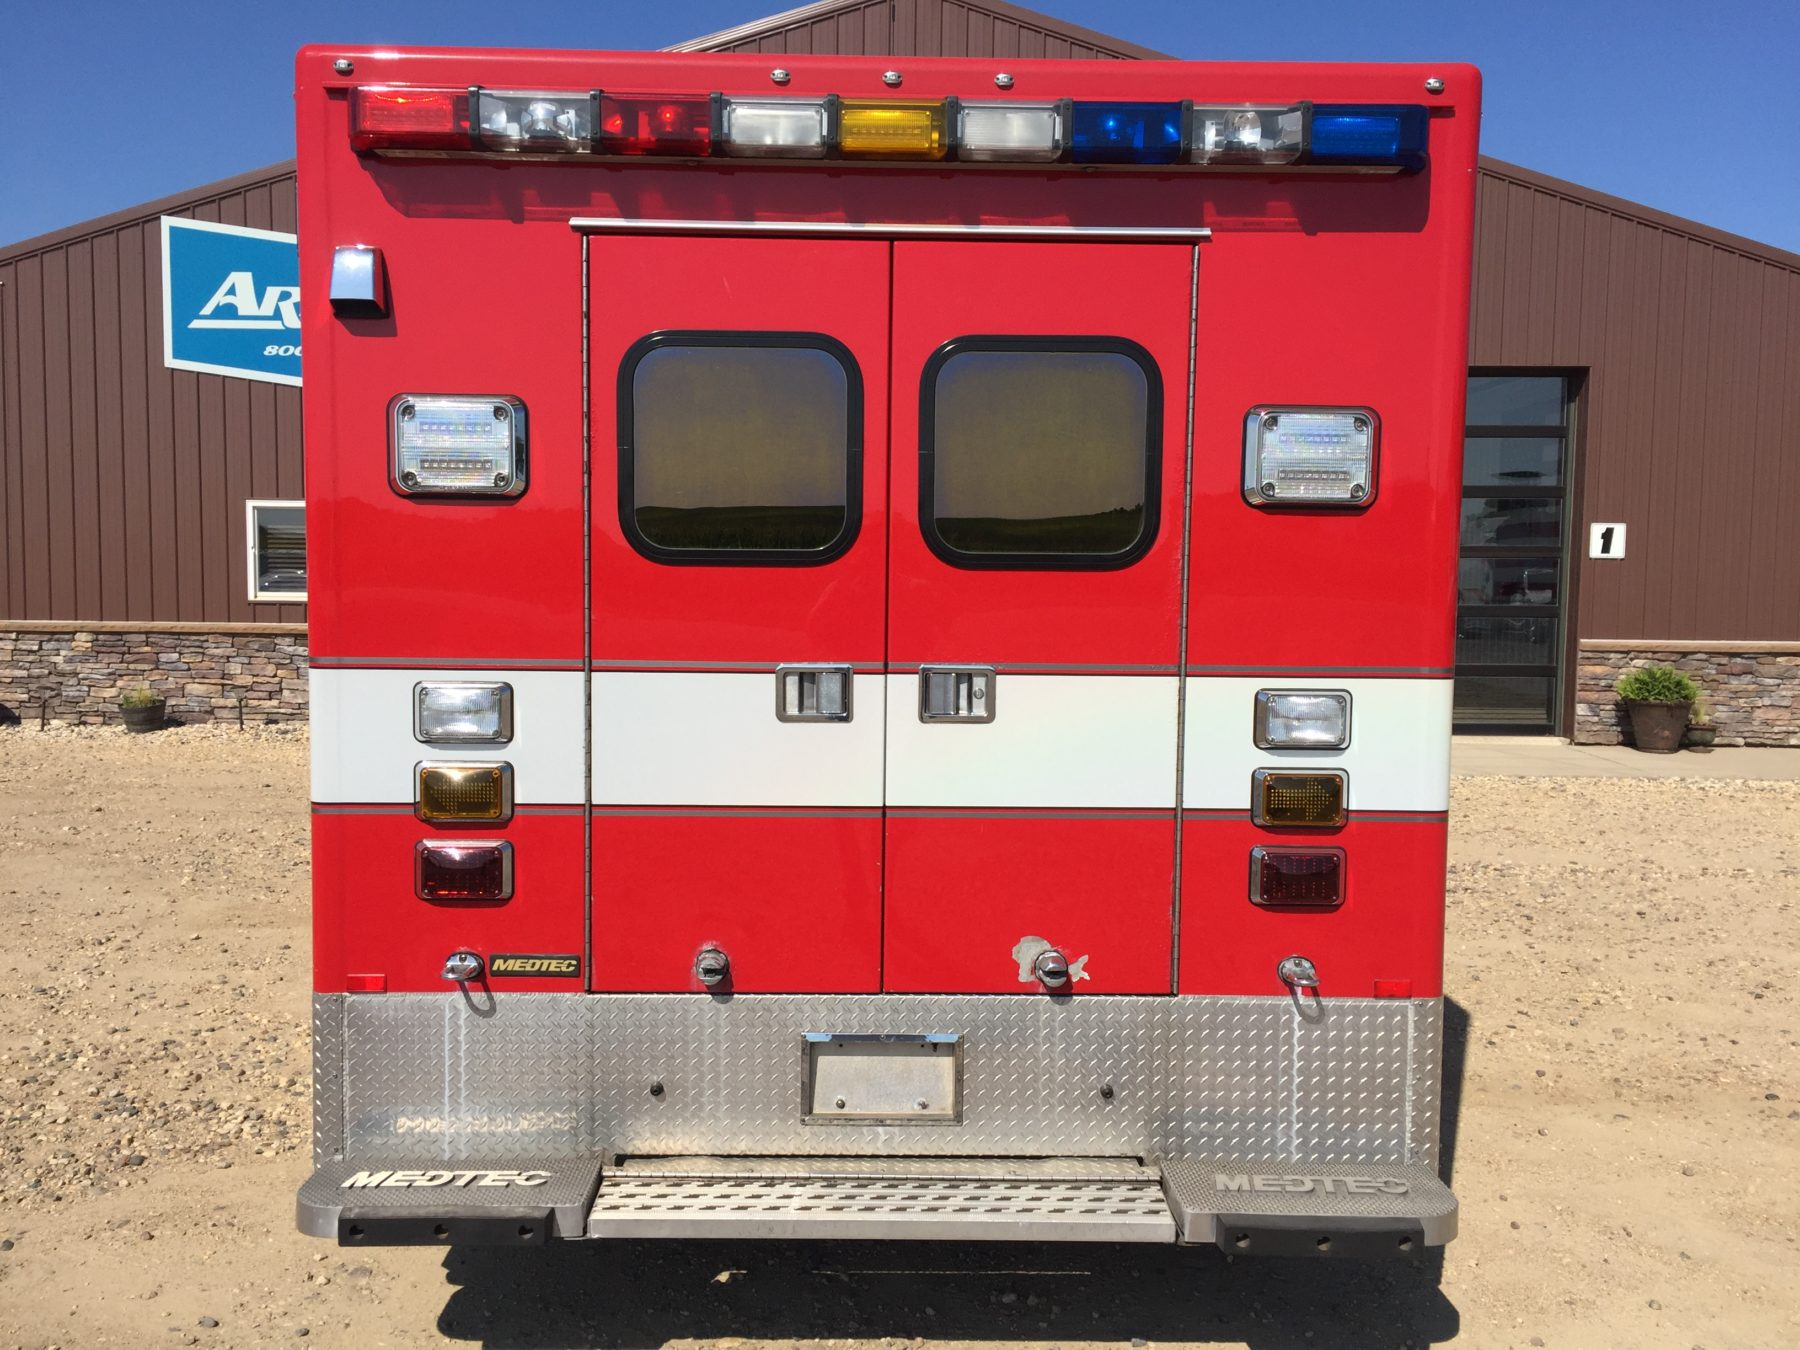 2009 Chevrolet C4500 Heavy Duty Ambulance For Sale – Picture 8